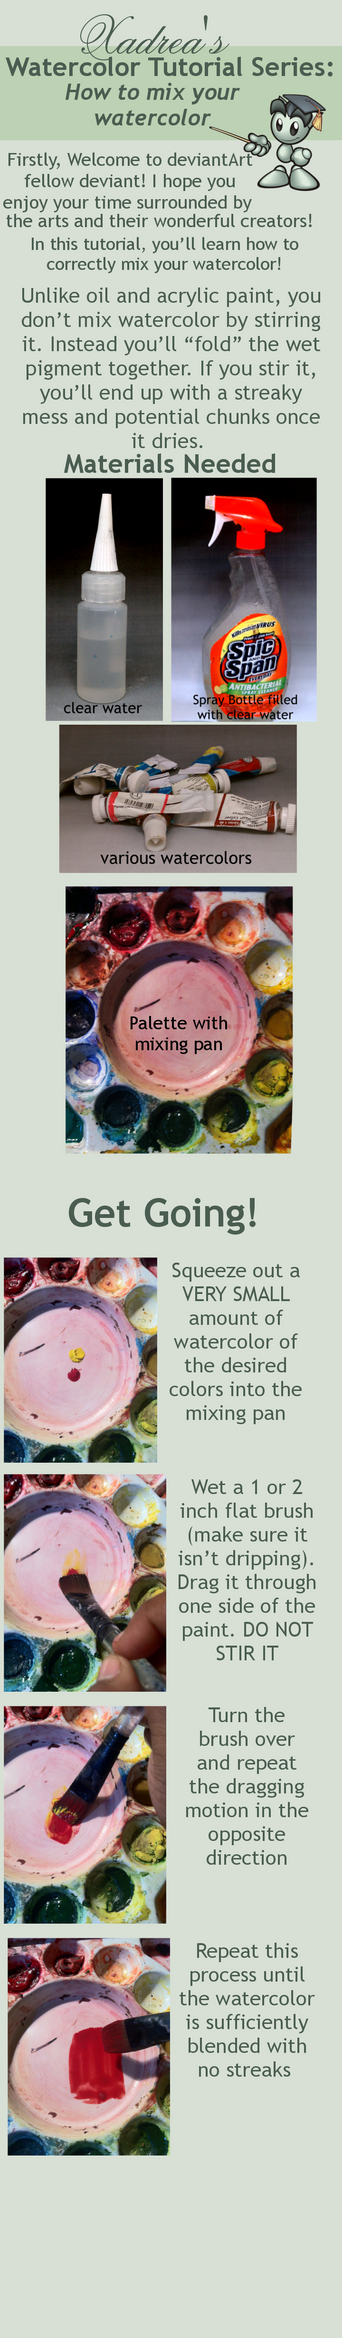 Watercolor Tutorial: How to Mix Watercolor